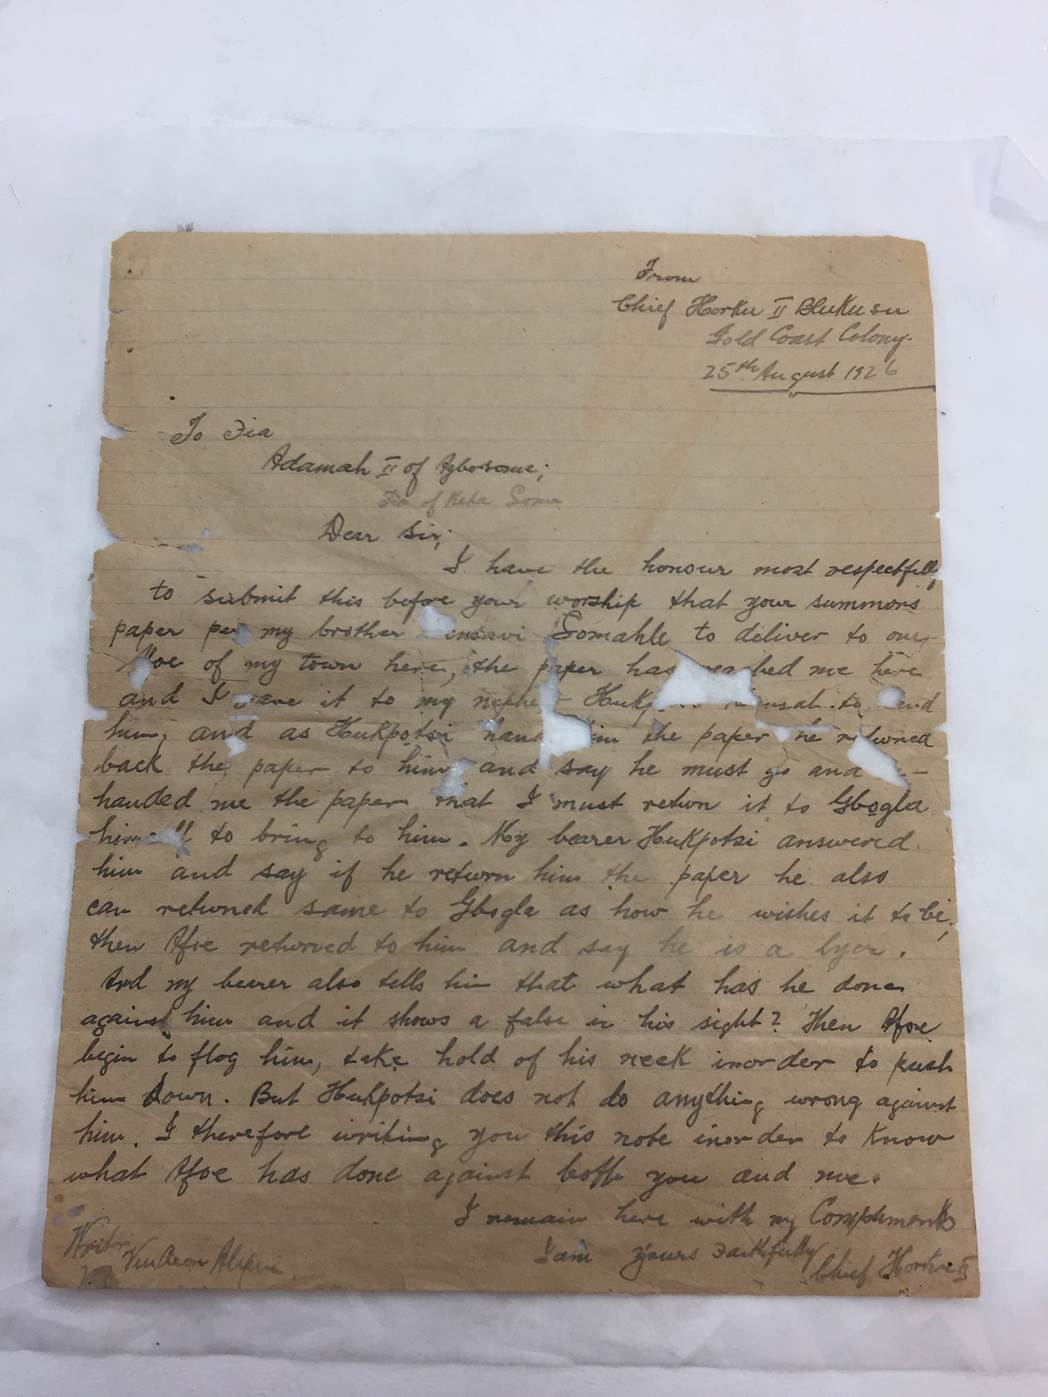 Image of the document after the fragments were placed in their original place